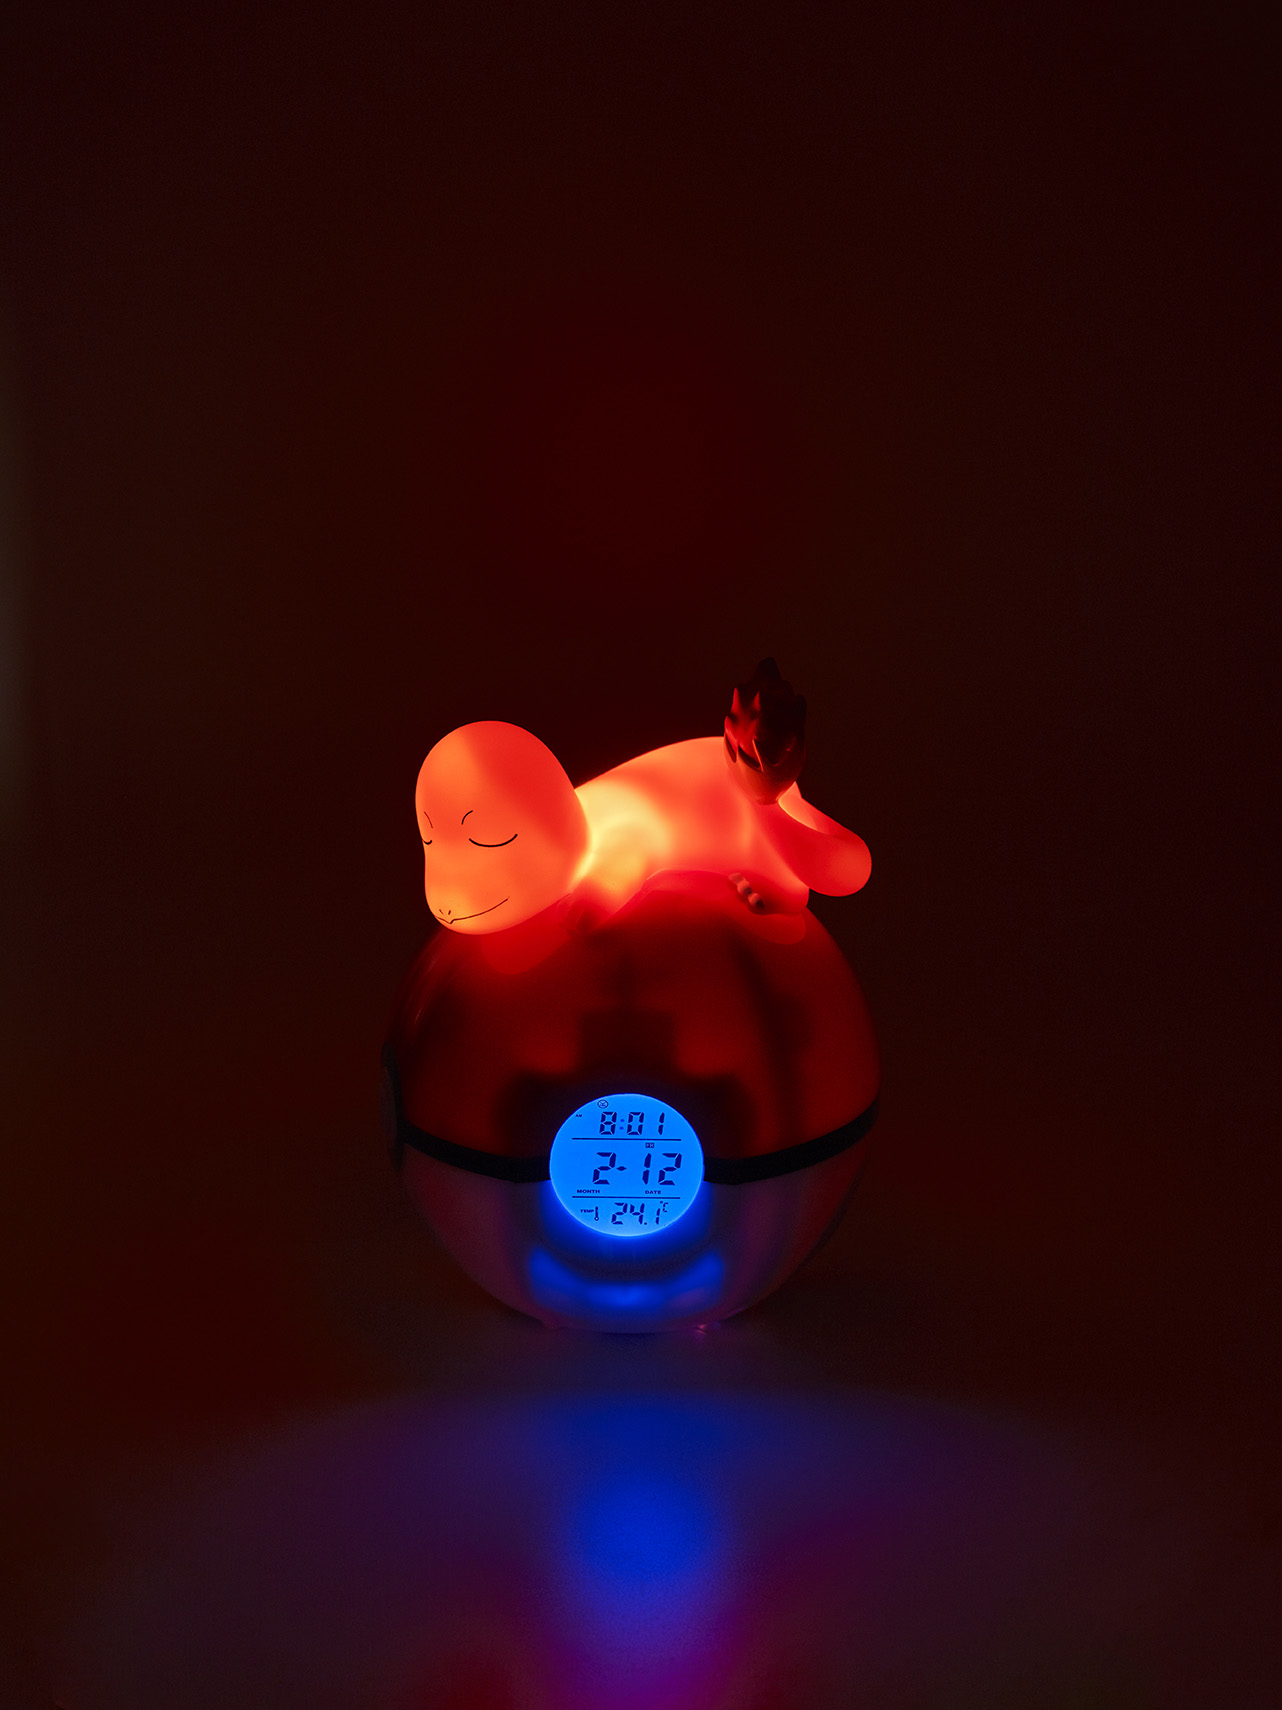 Charmander Light-up 3D figure FM Alarm Clock 3